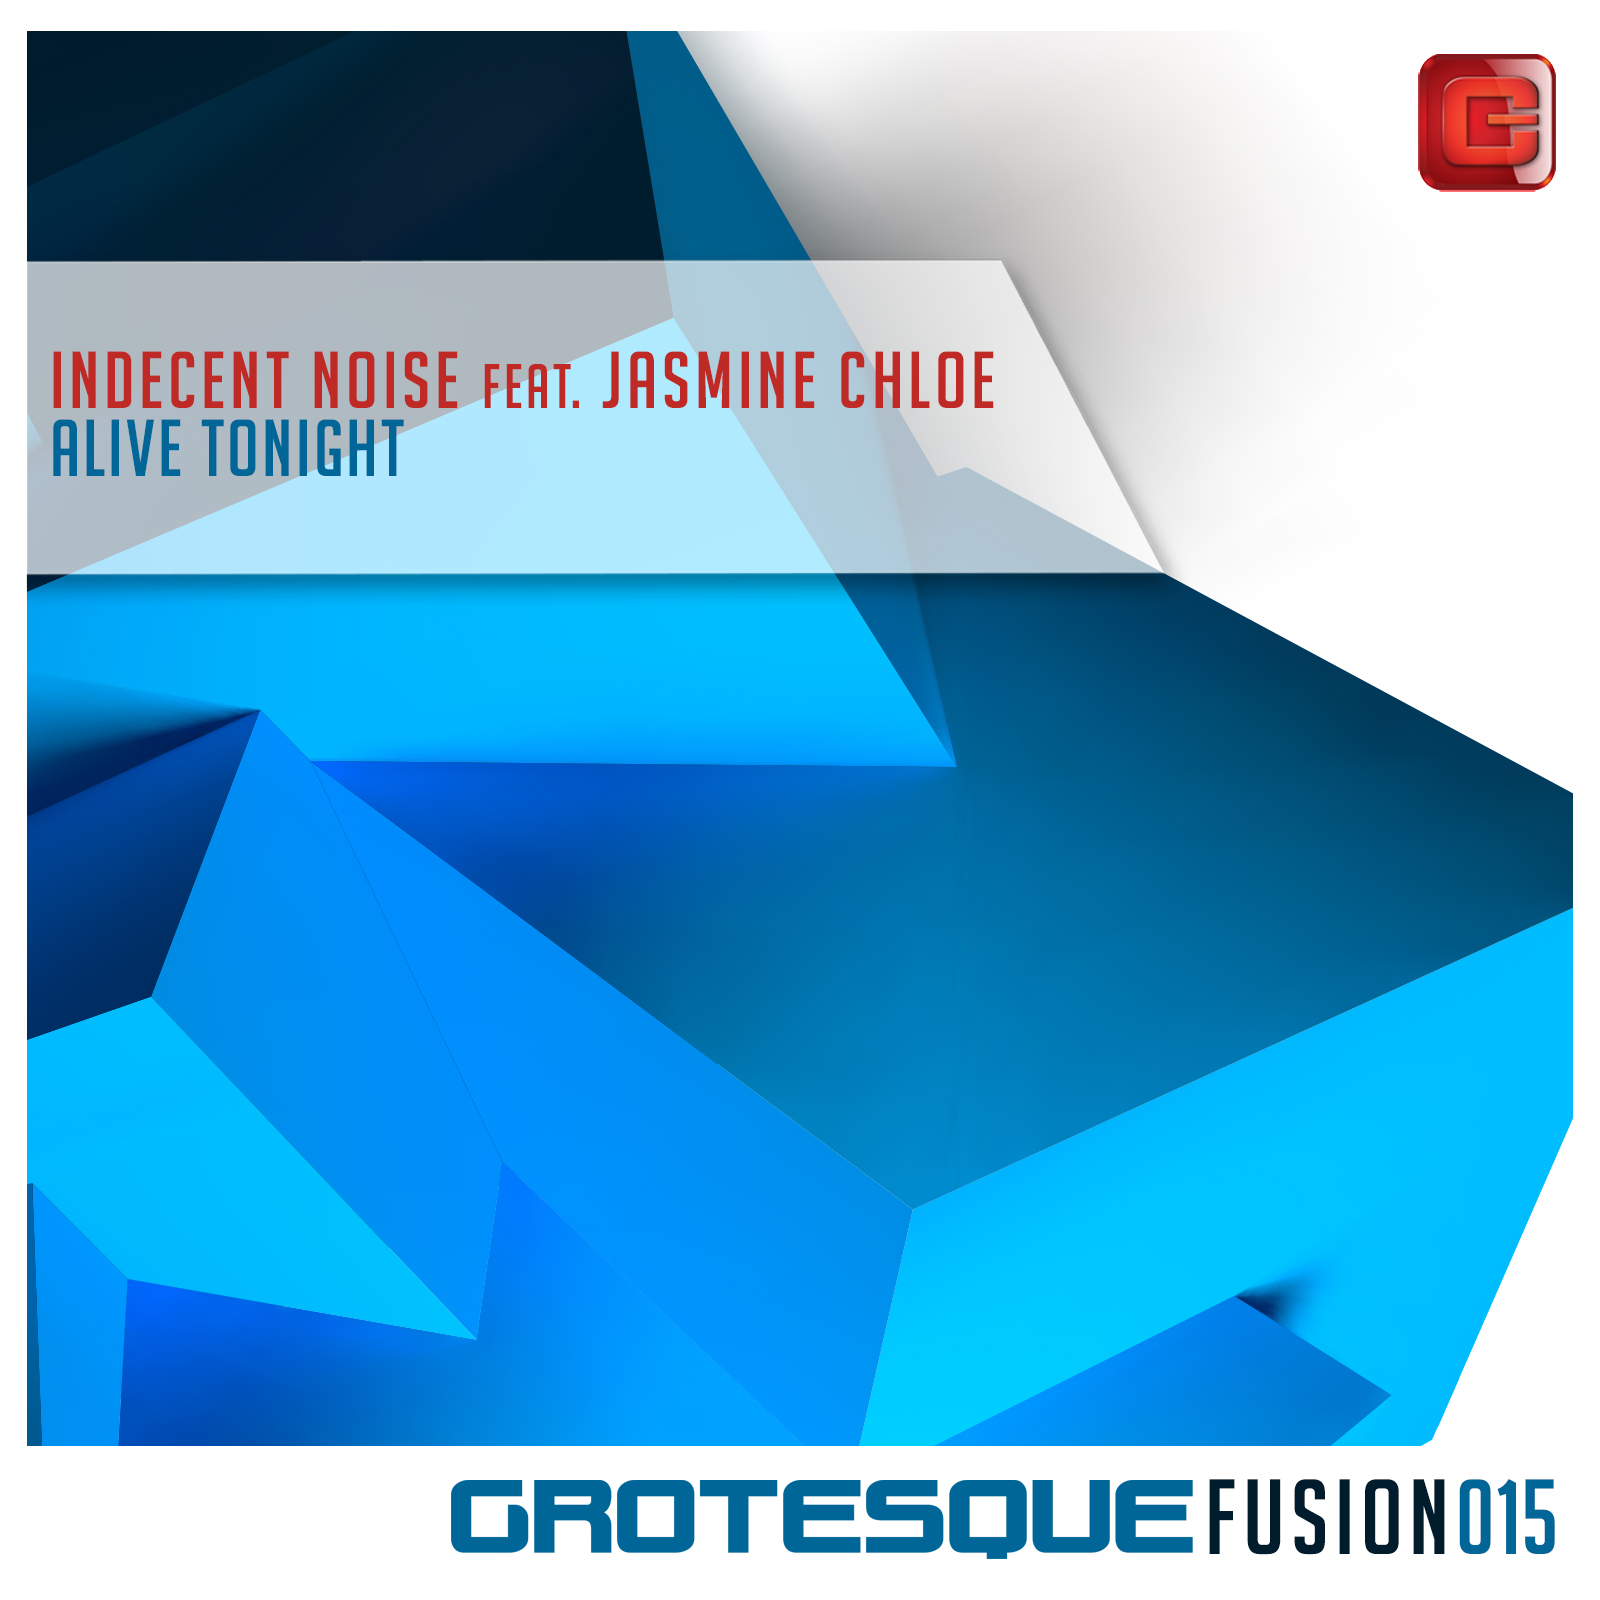 Indecent Noise feat. Jasmine Chloe - Alive Tonight